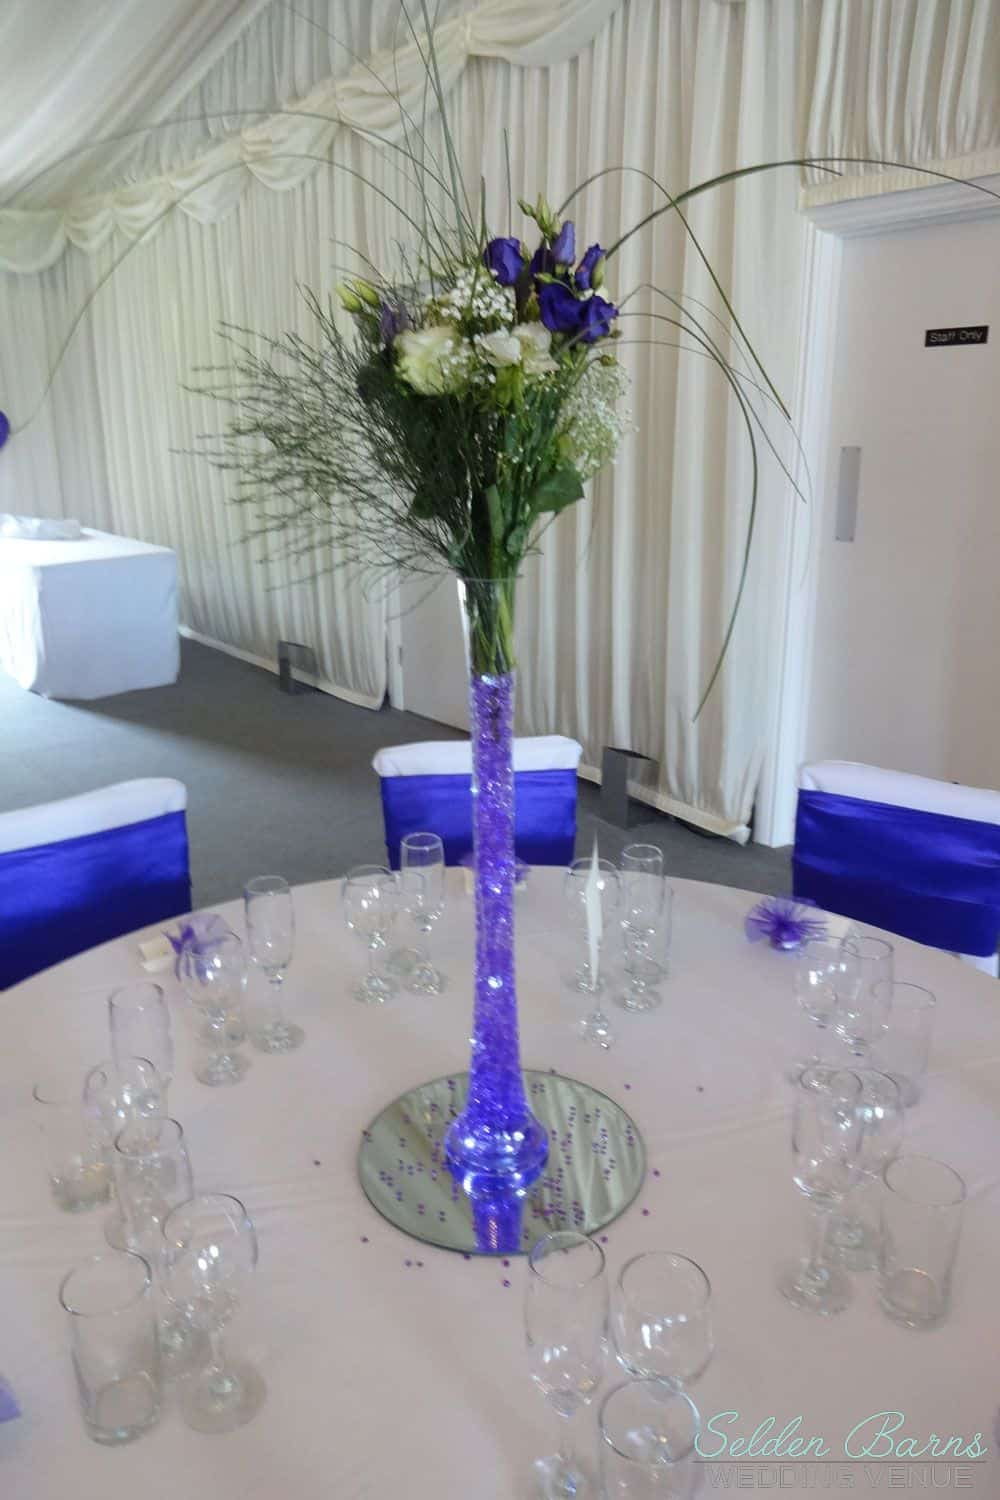 Flowers selden barns blue and white floral arrangement in a glass flute with blue glass beads reviewsmspy